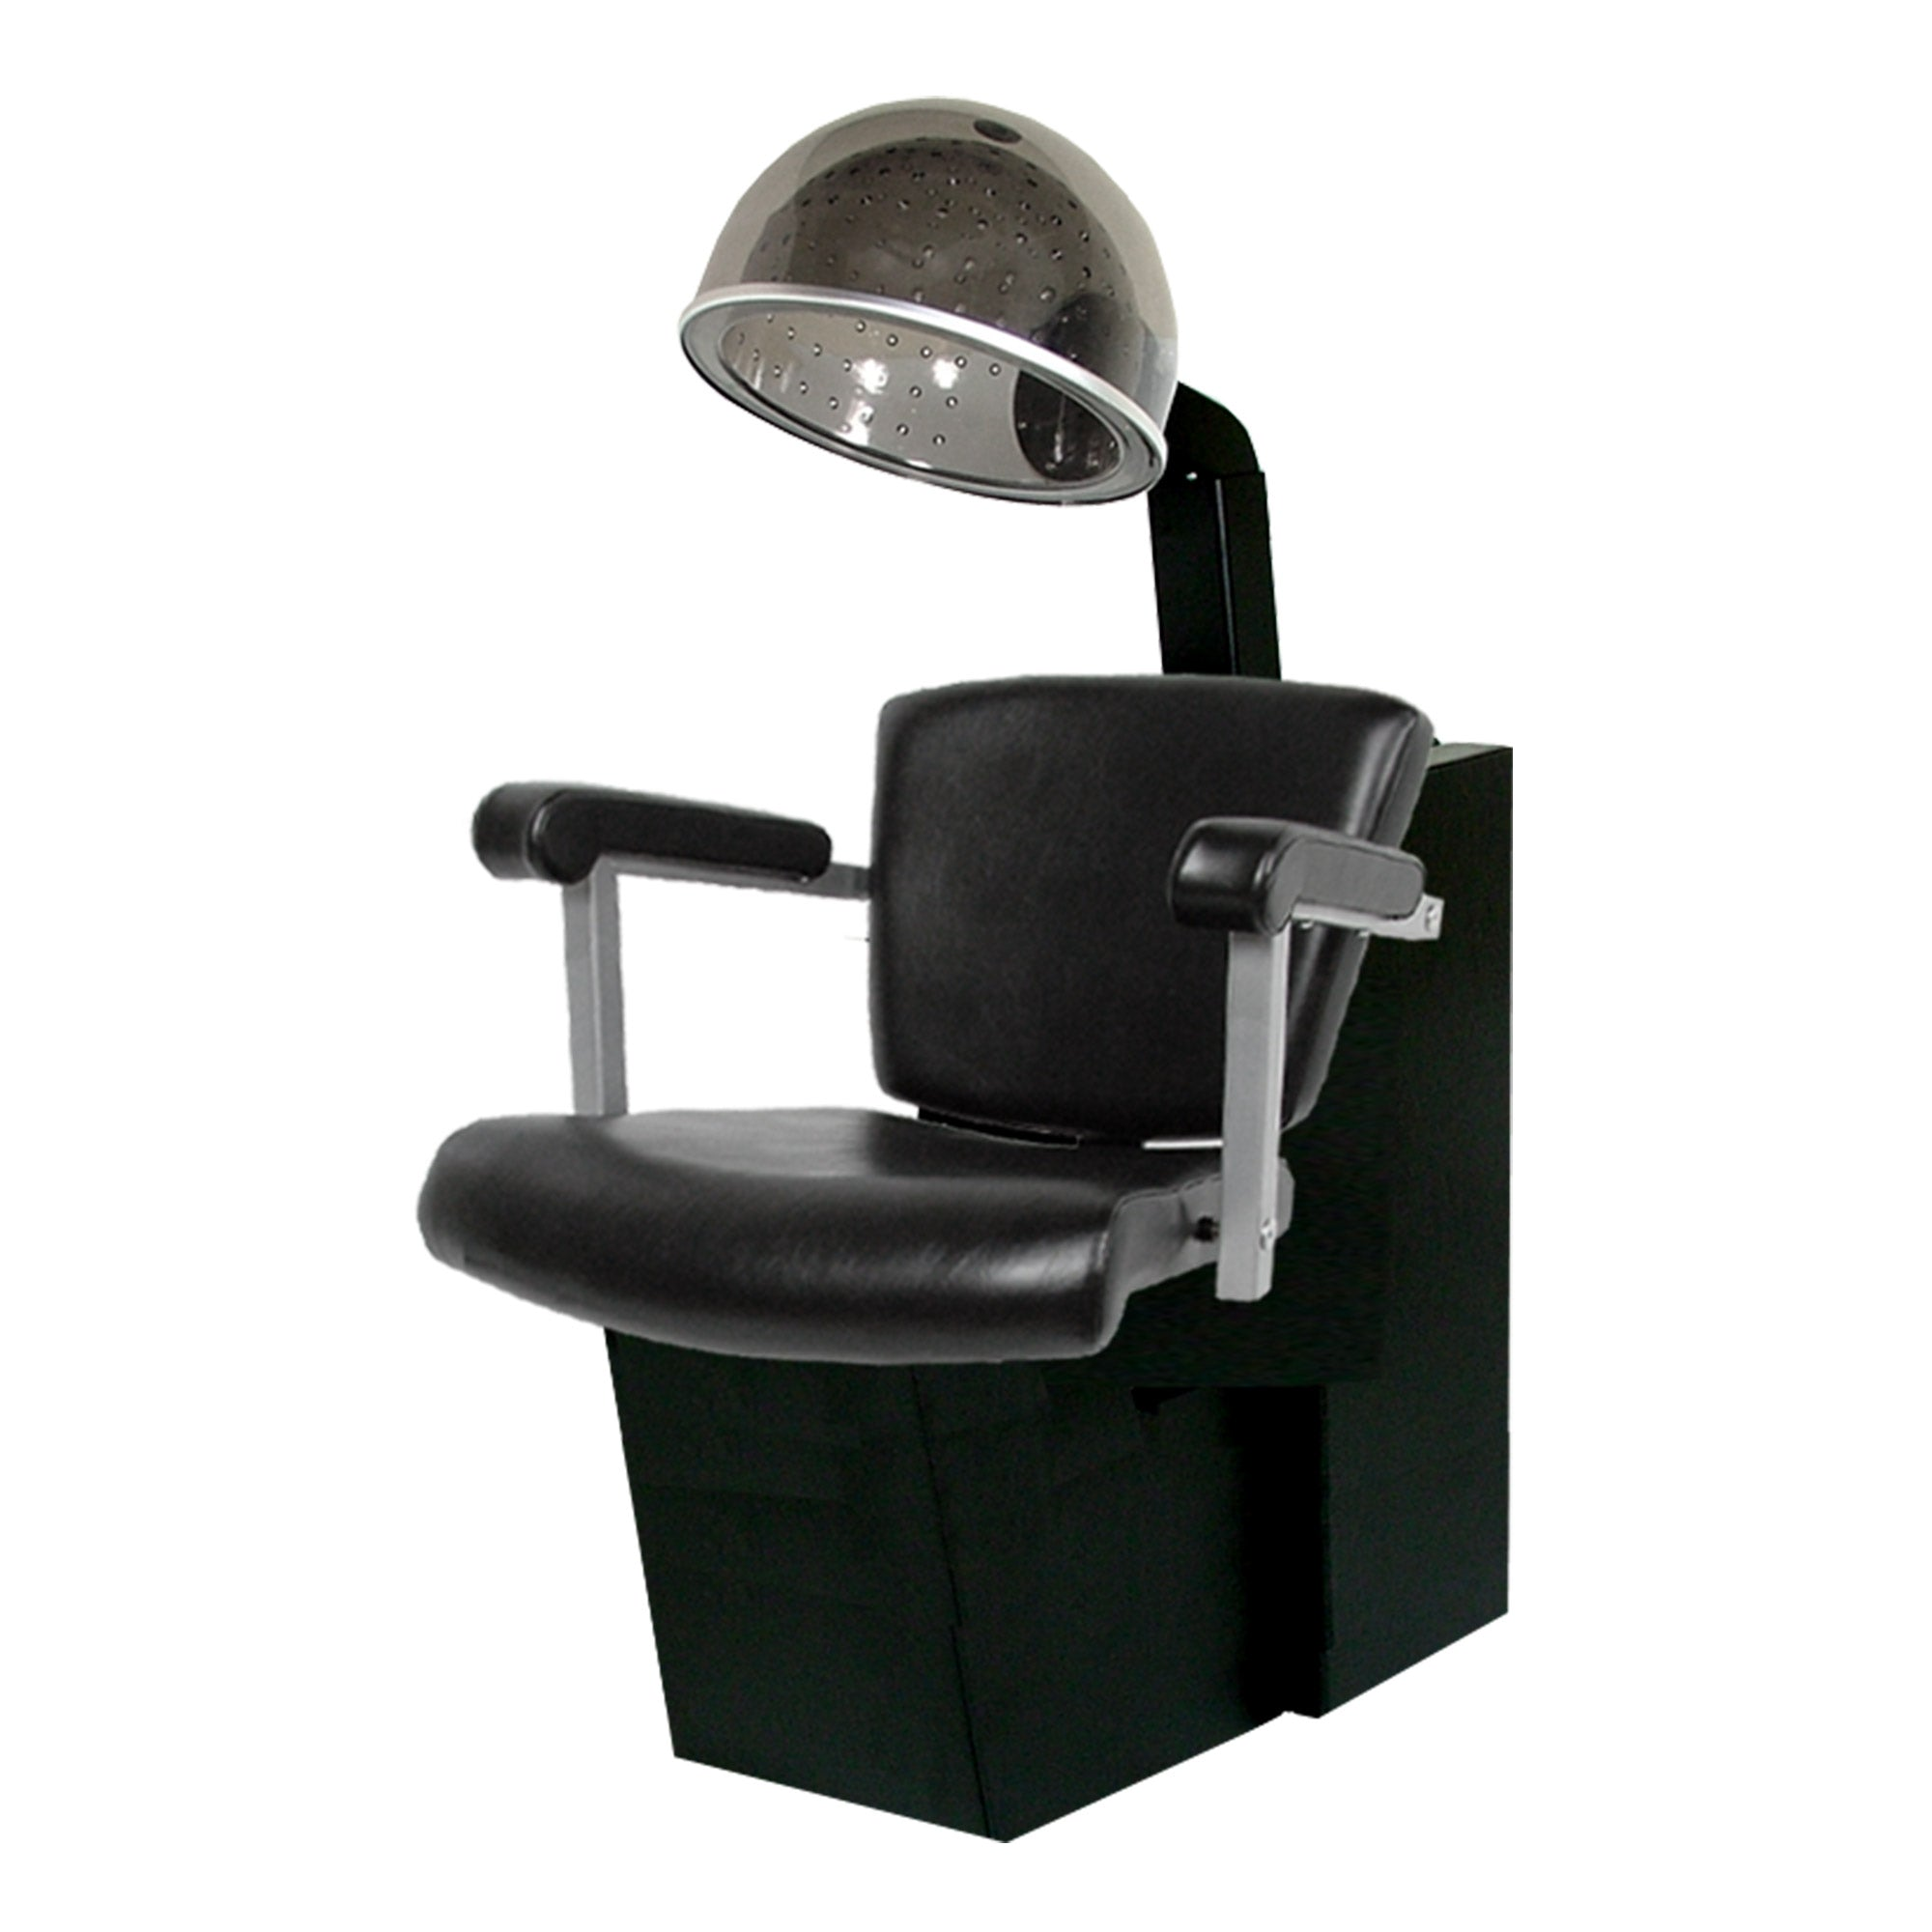 Vittoria Dryer Chair - Collins